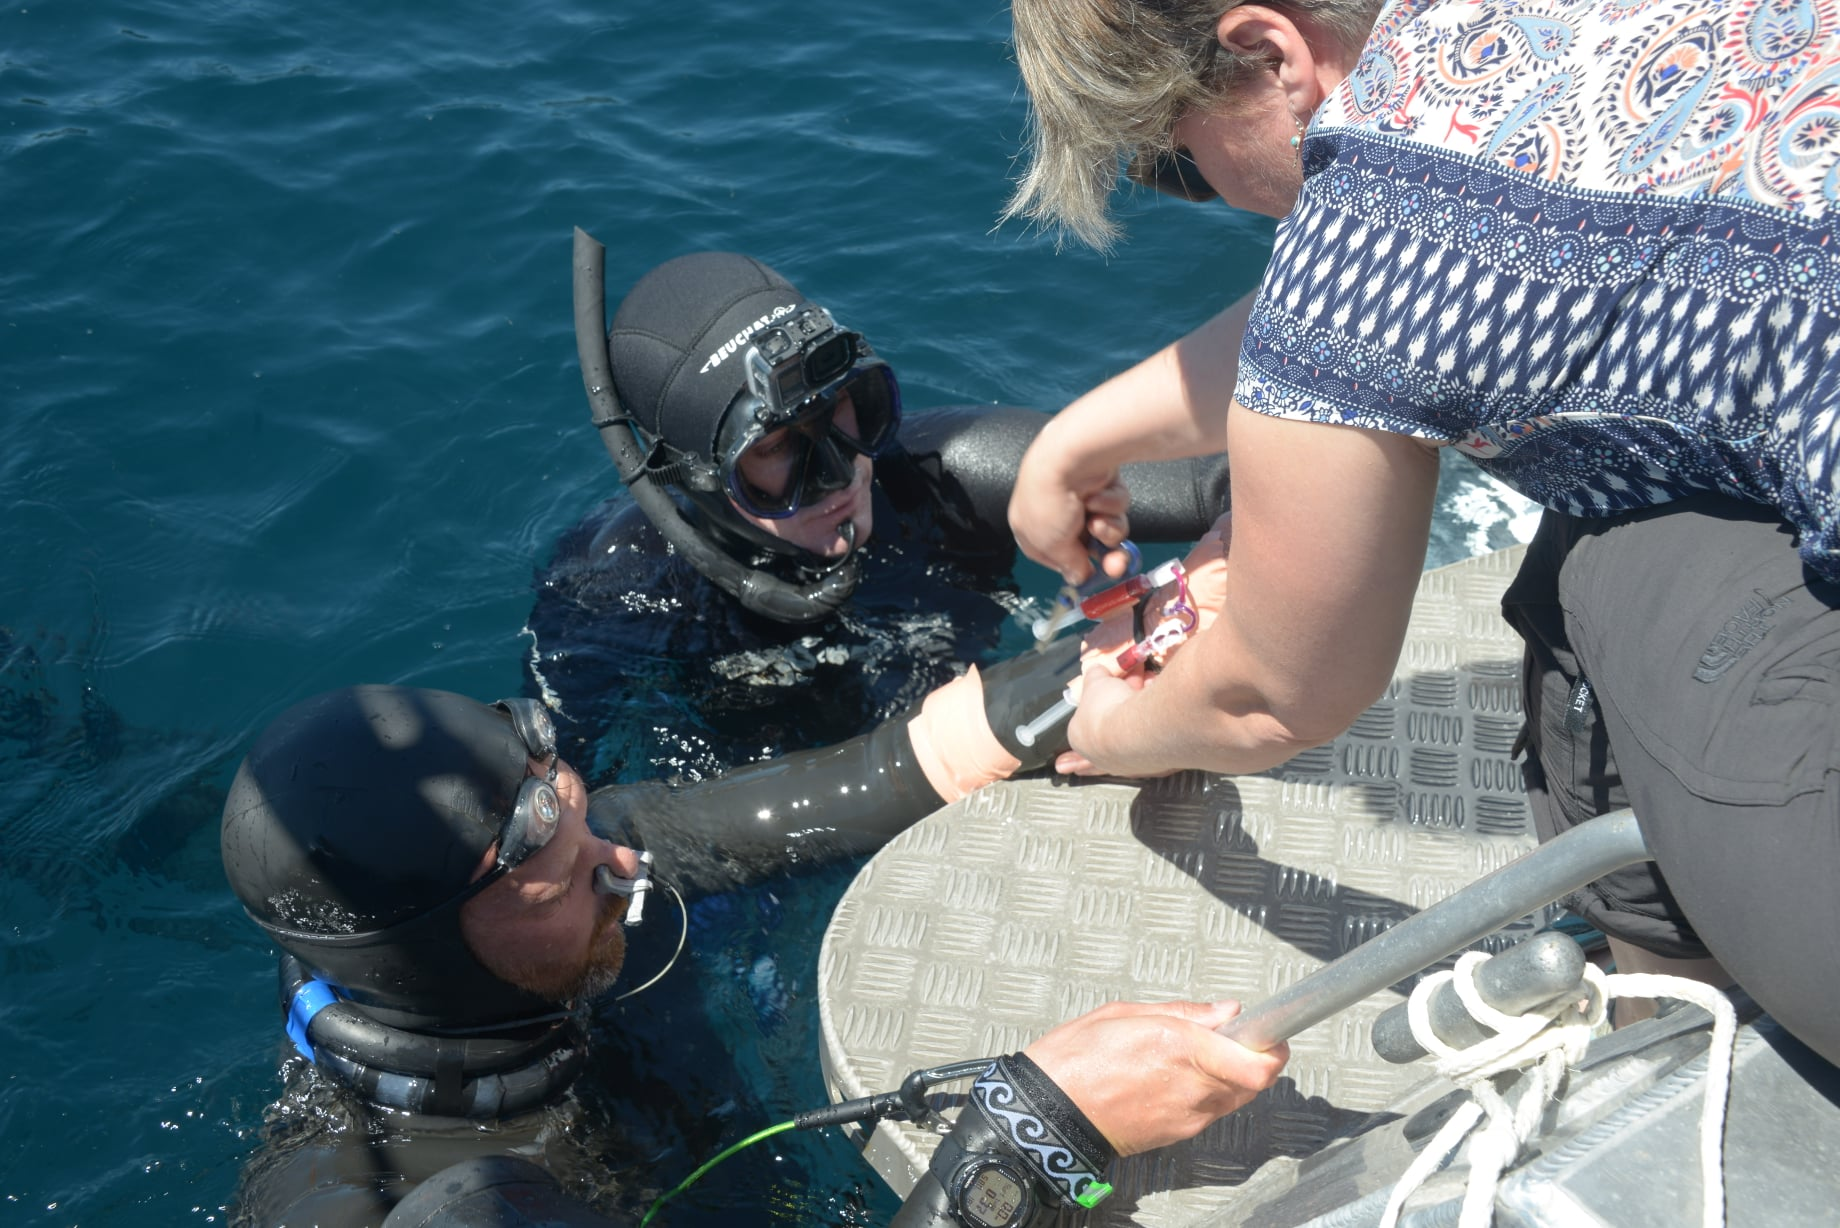 Ground-breaking freediving research